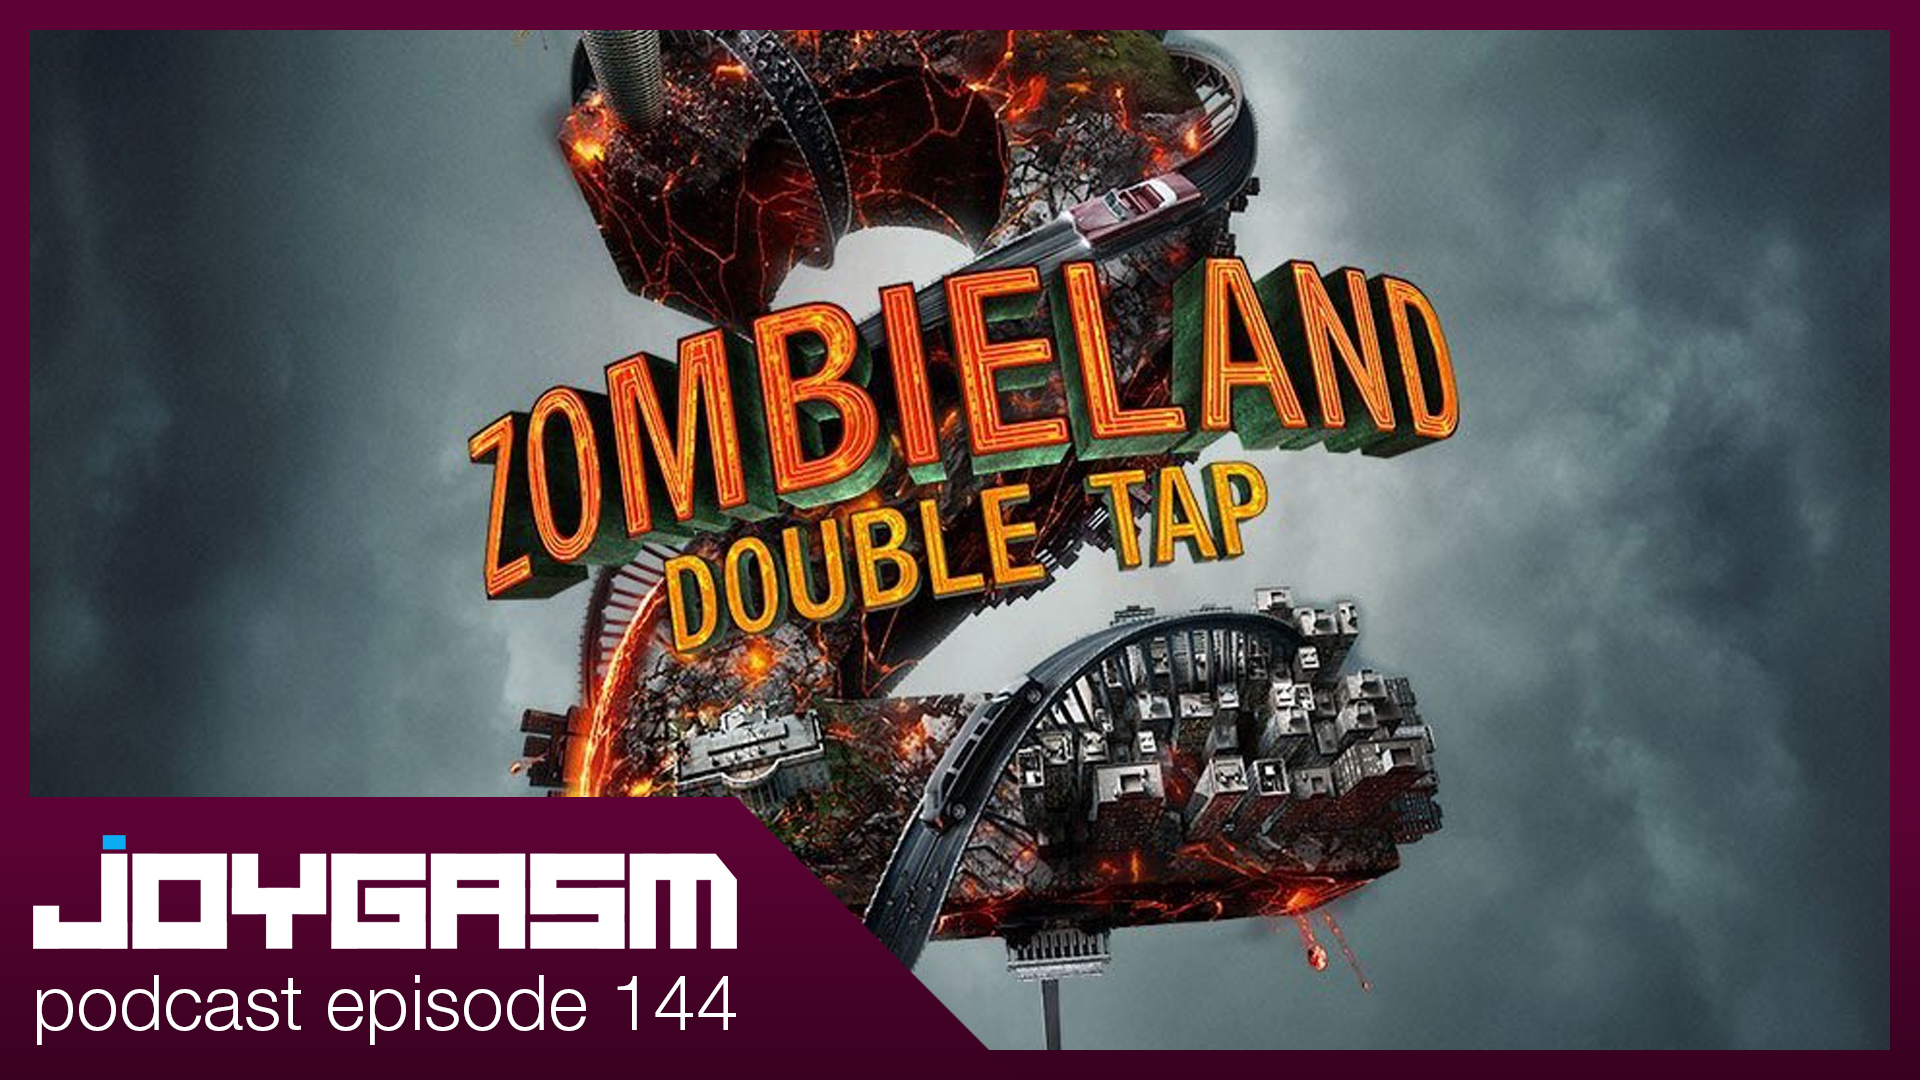 Ep. 144: Zombieland: Double Tap Movie Review, & More